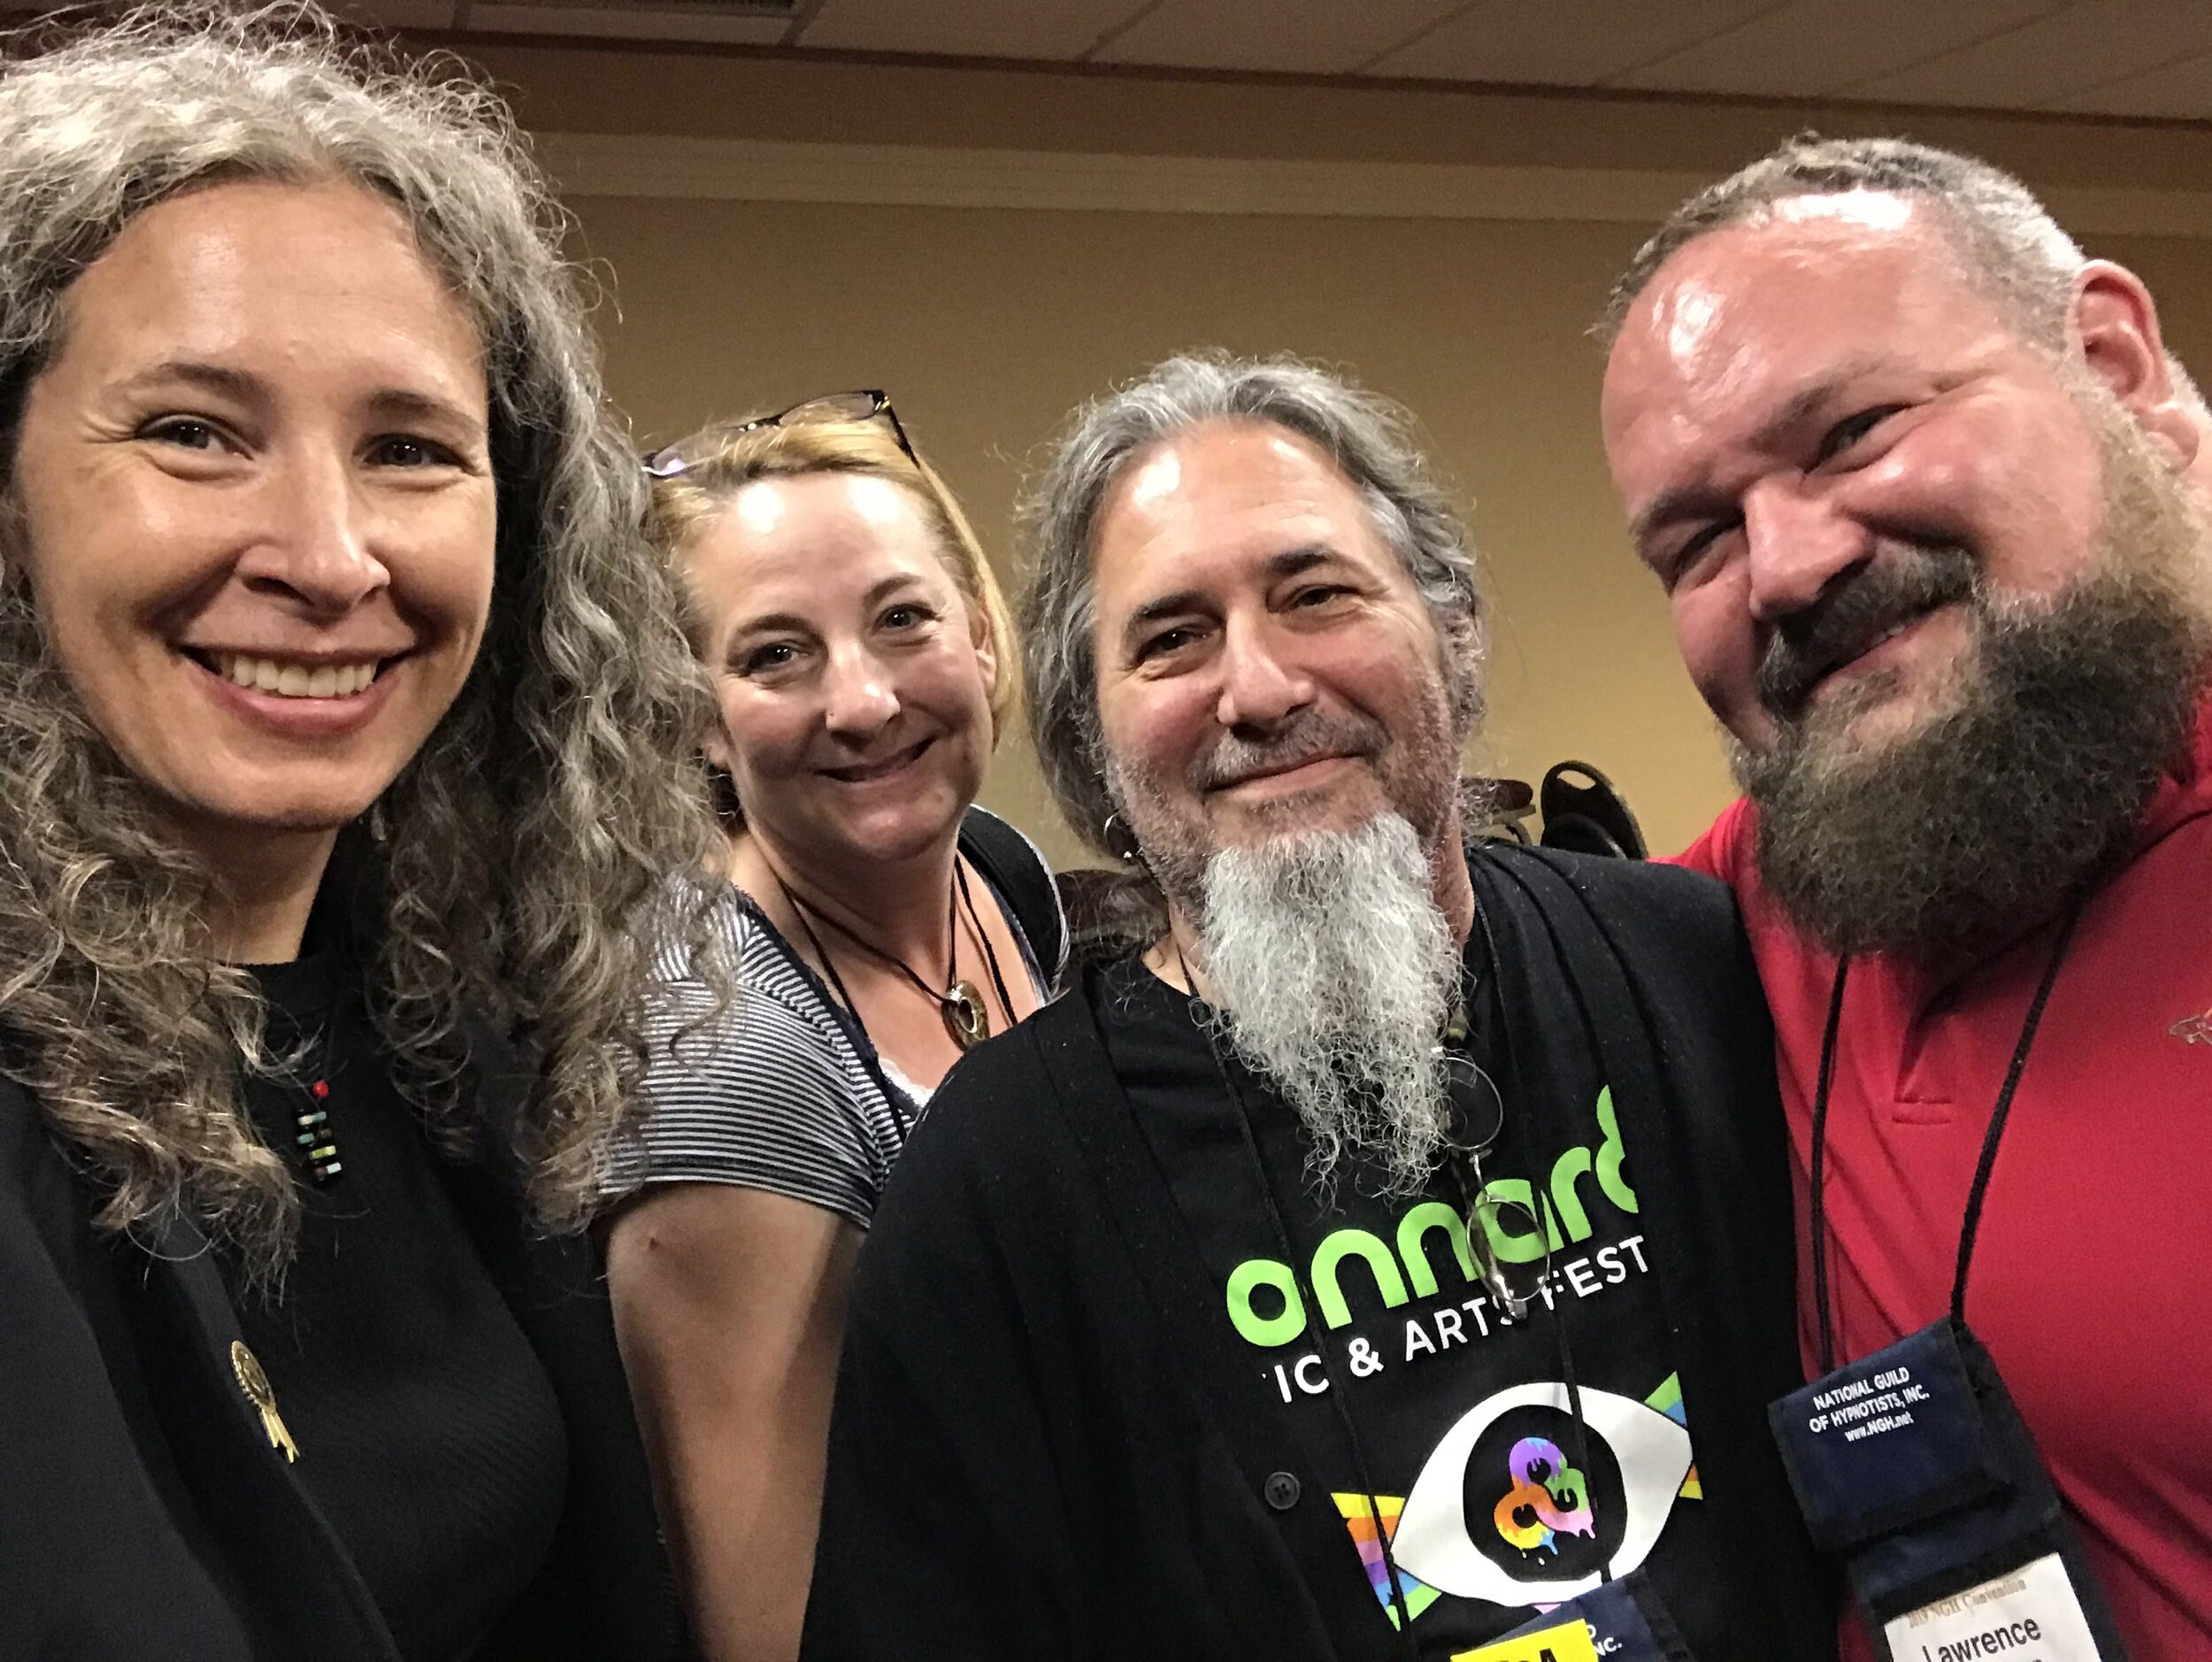 Erika Flint with grads at the NGH convention: Paulette Deckers, Dillion Sims, and Lawrence Winnerman. Not pictured: Kathie Hardy, and Tracy Kim